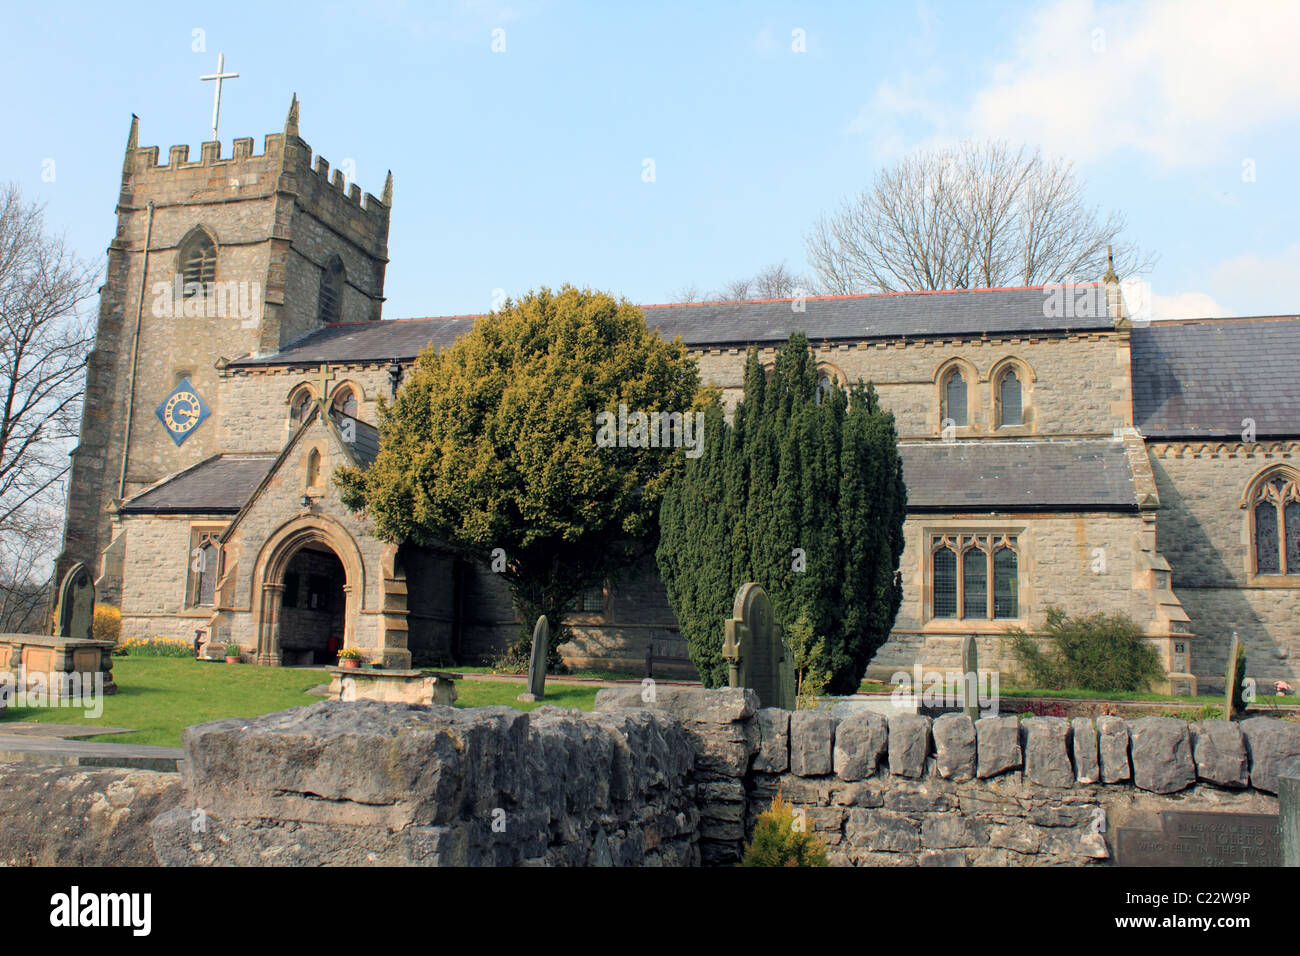 St Marys Church Ingleton Yorkshire Dales United kingdom UK - Stock Image